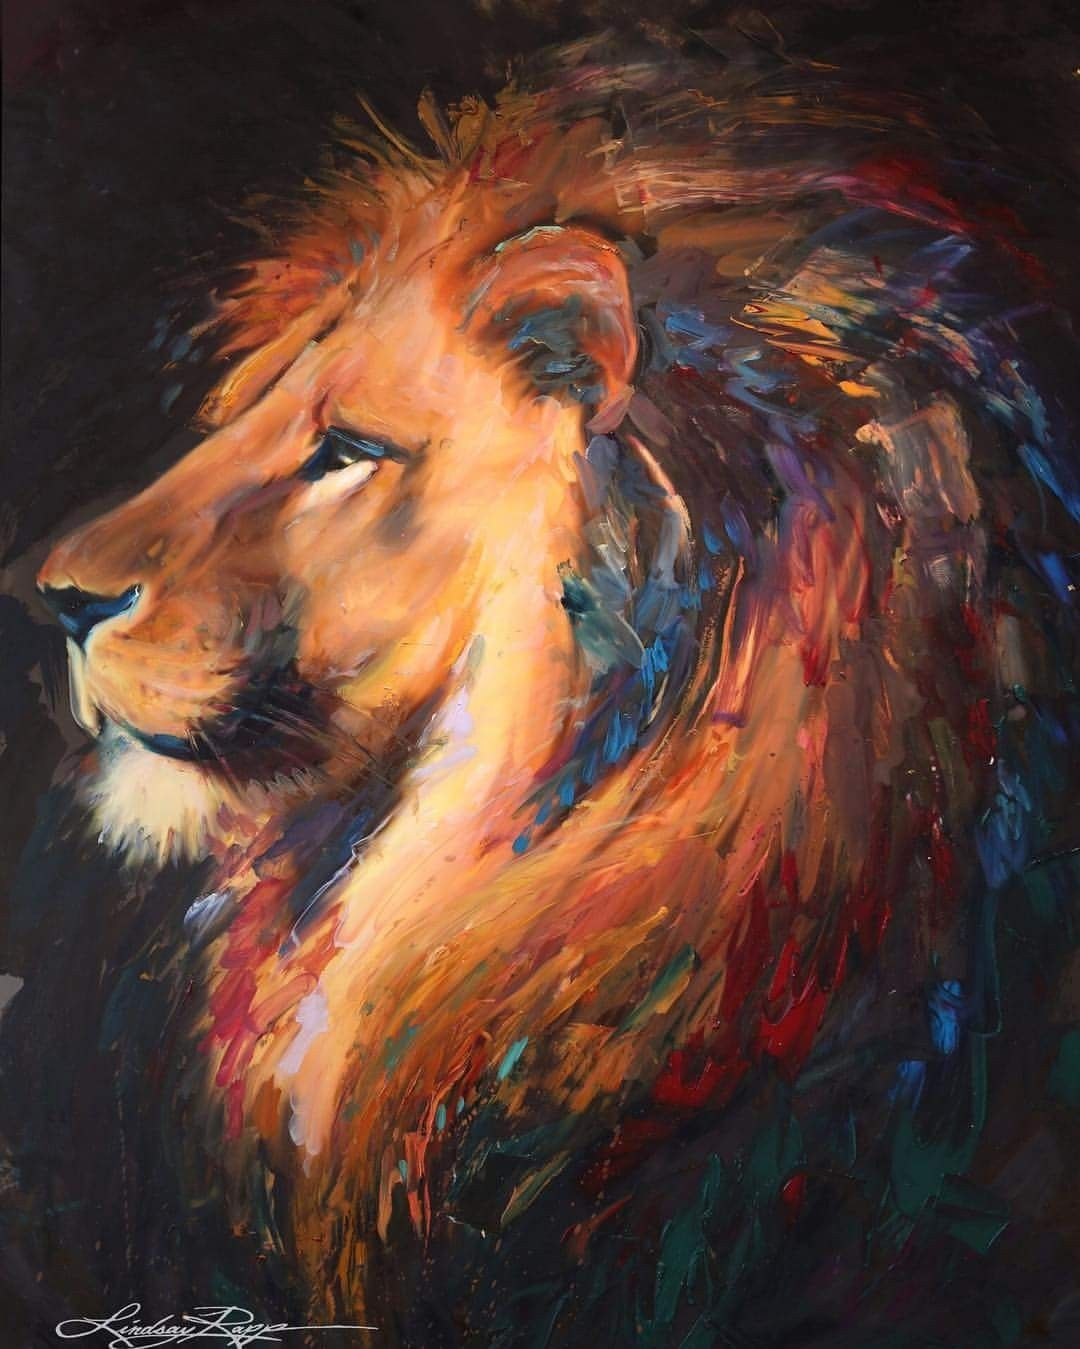 Pin by Julo on painting   Lion art, Lion painting, Painting